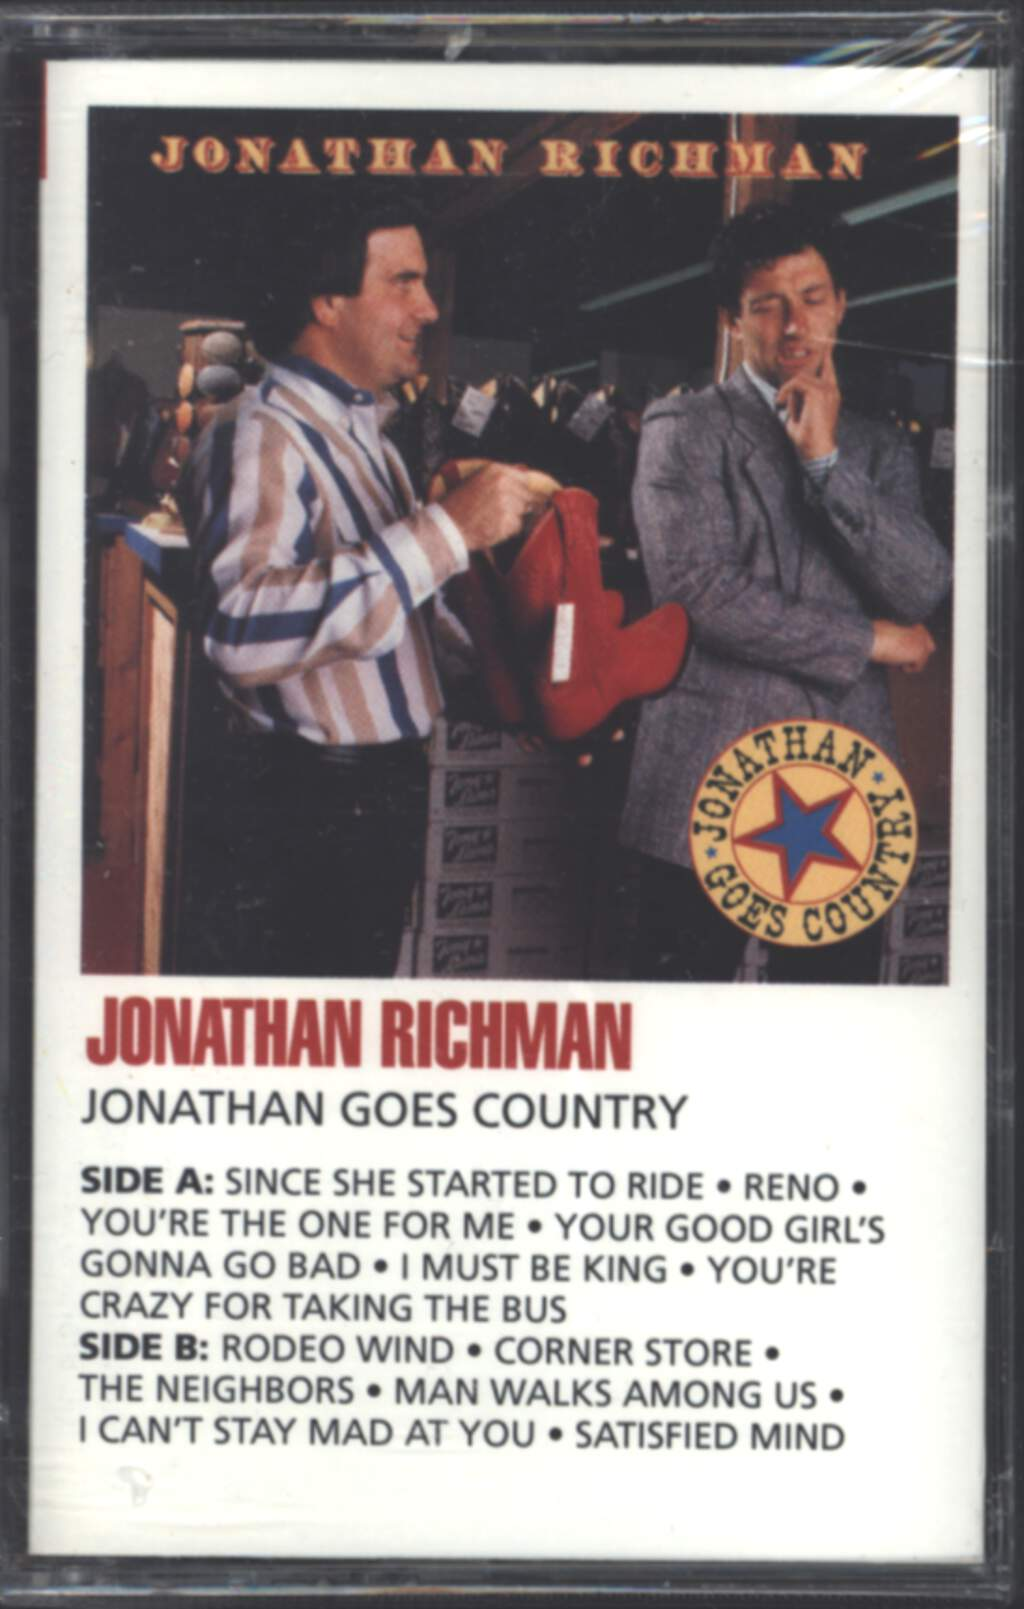 Jonathan Richman: Jonathan Goes Country, Compact Cassette